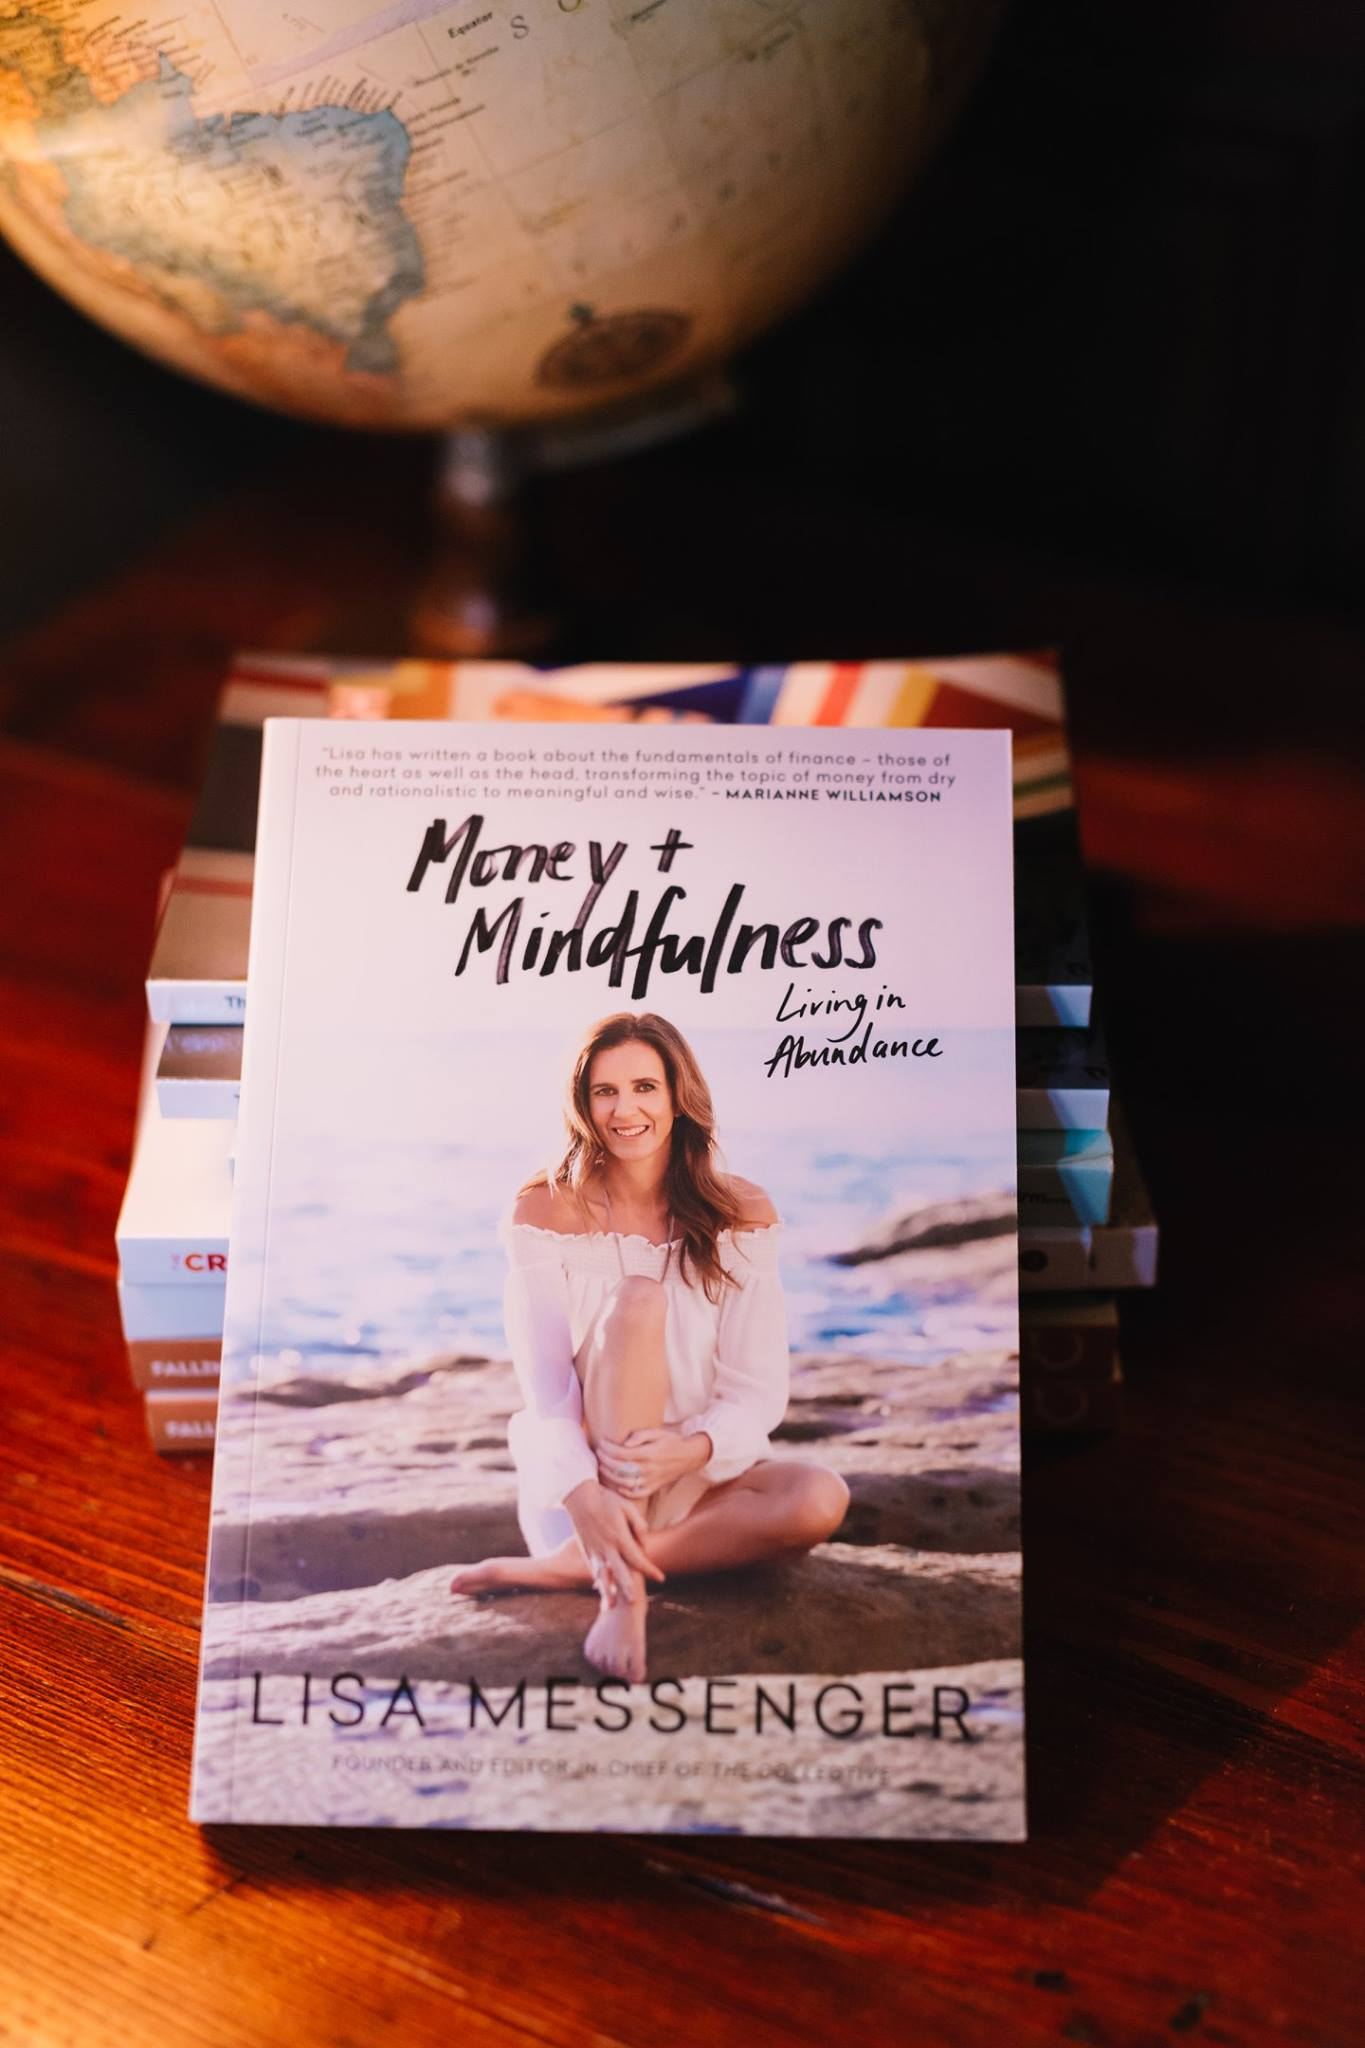 We have lots of fabulous giveaways at our events including a copy of this excellent book 'Money & Mindfulness' by Lisa Messenger, founder of Collective Hub, who spoke at our first Mama Creatives Christmas Bash. This book is full of wisdom, perfect for creatives.   http://collectivehub.com/product/money-mindfulness/